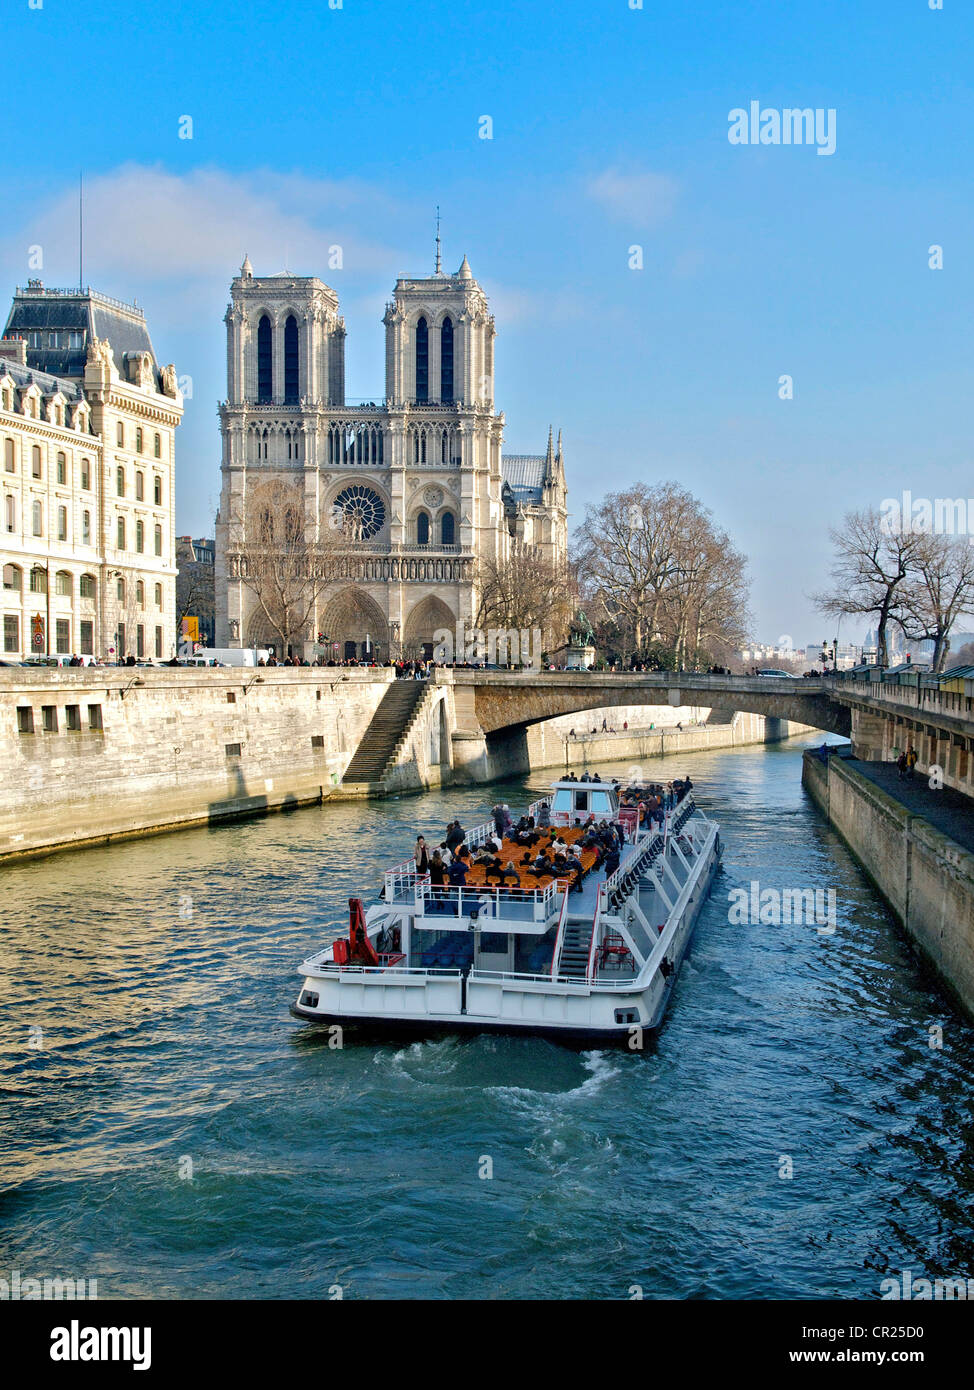 Notre Dame cathedral and pleasure cruise boat on the Seine river, Paris, France, Europe - Stock Image